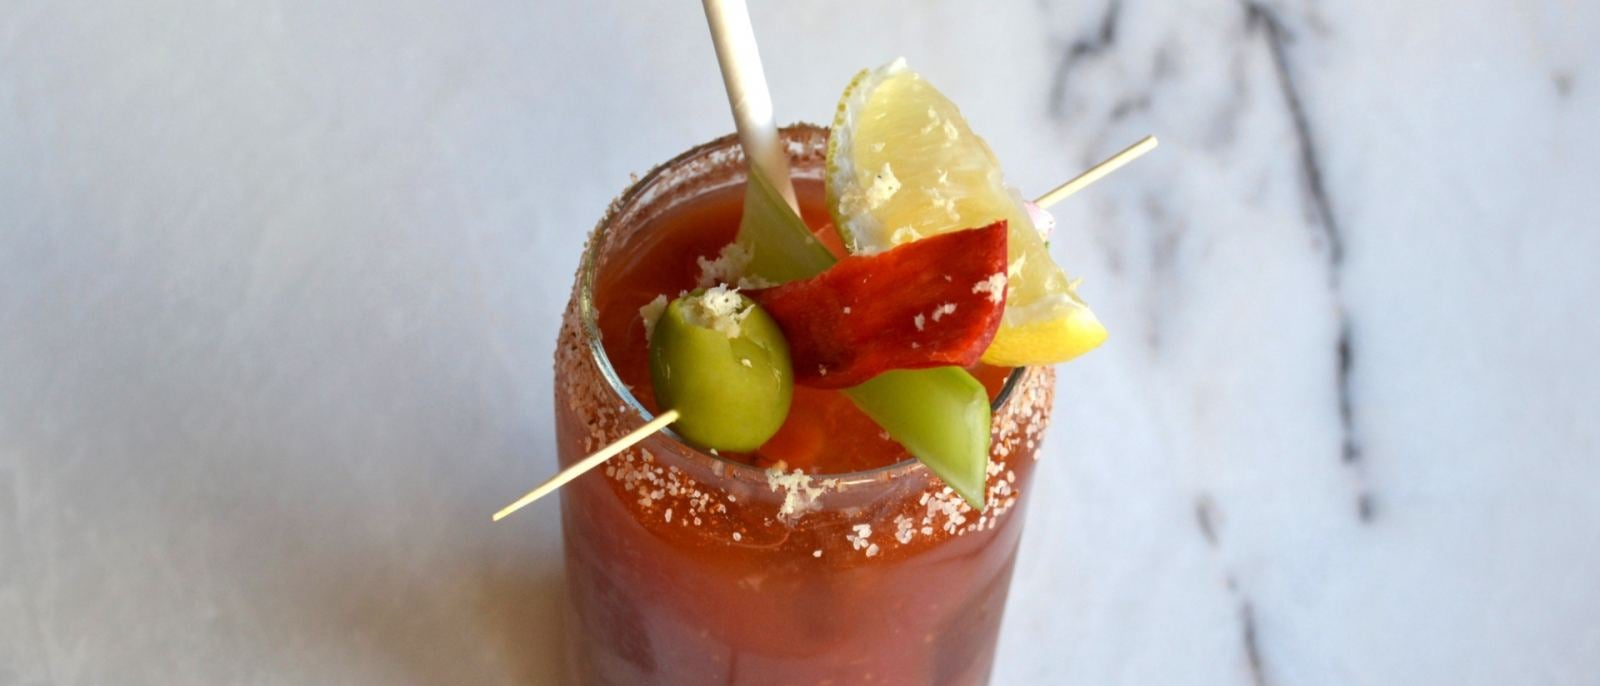 Sunday Bloody Sunday at Sibling Rival in The Hoxton DTLA